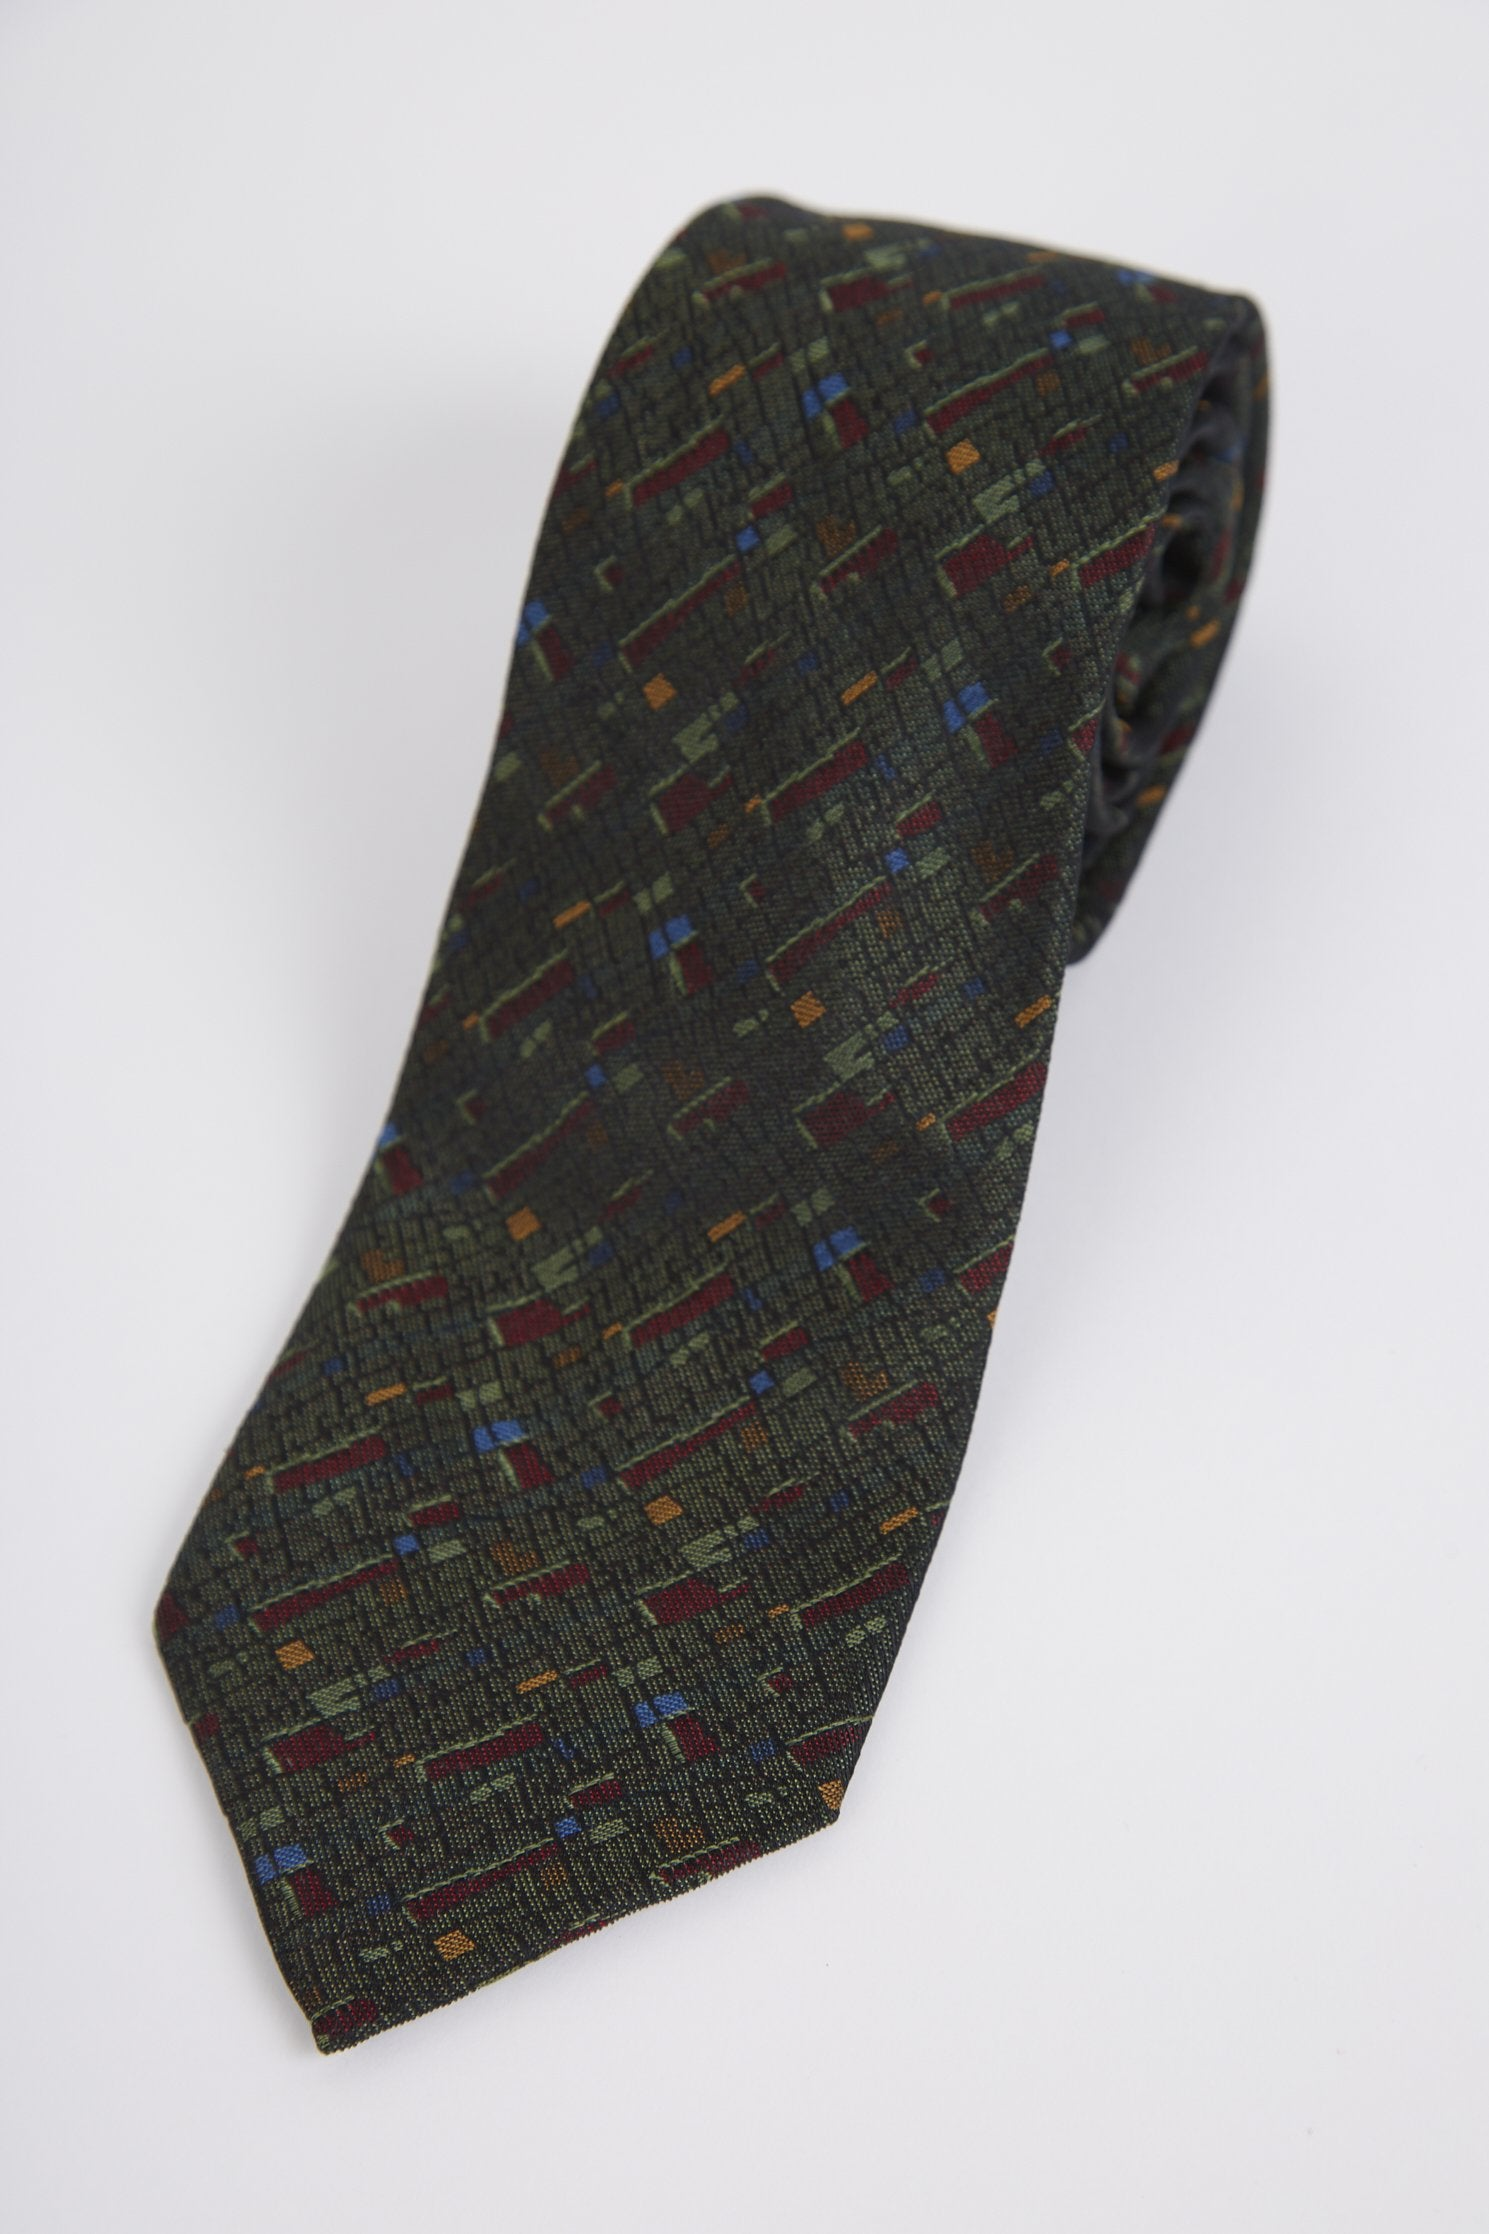 Vintage Missoni Tie - Thrifted.com